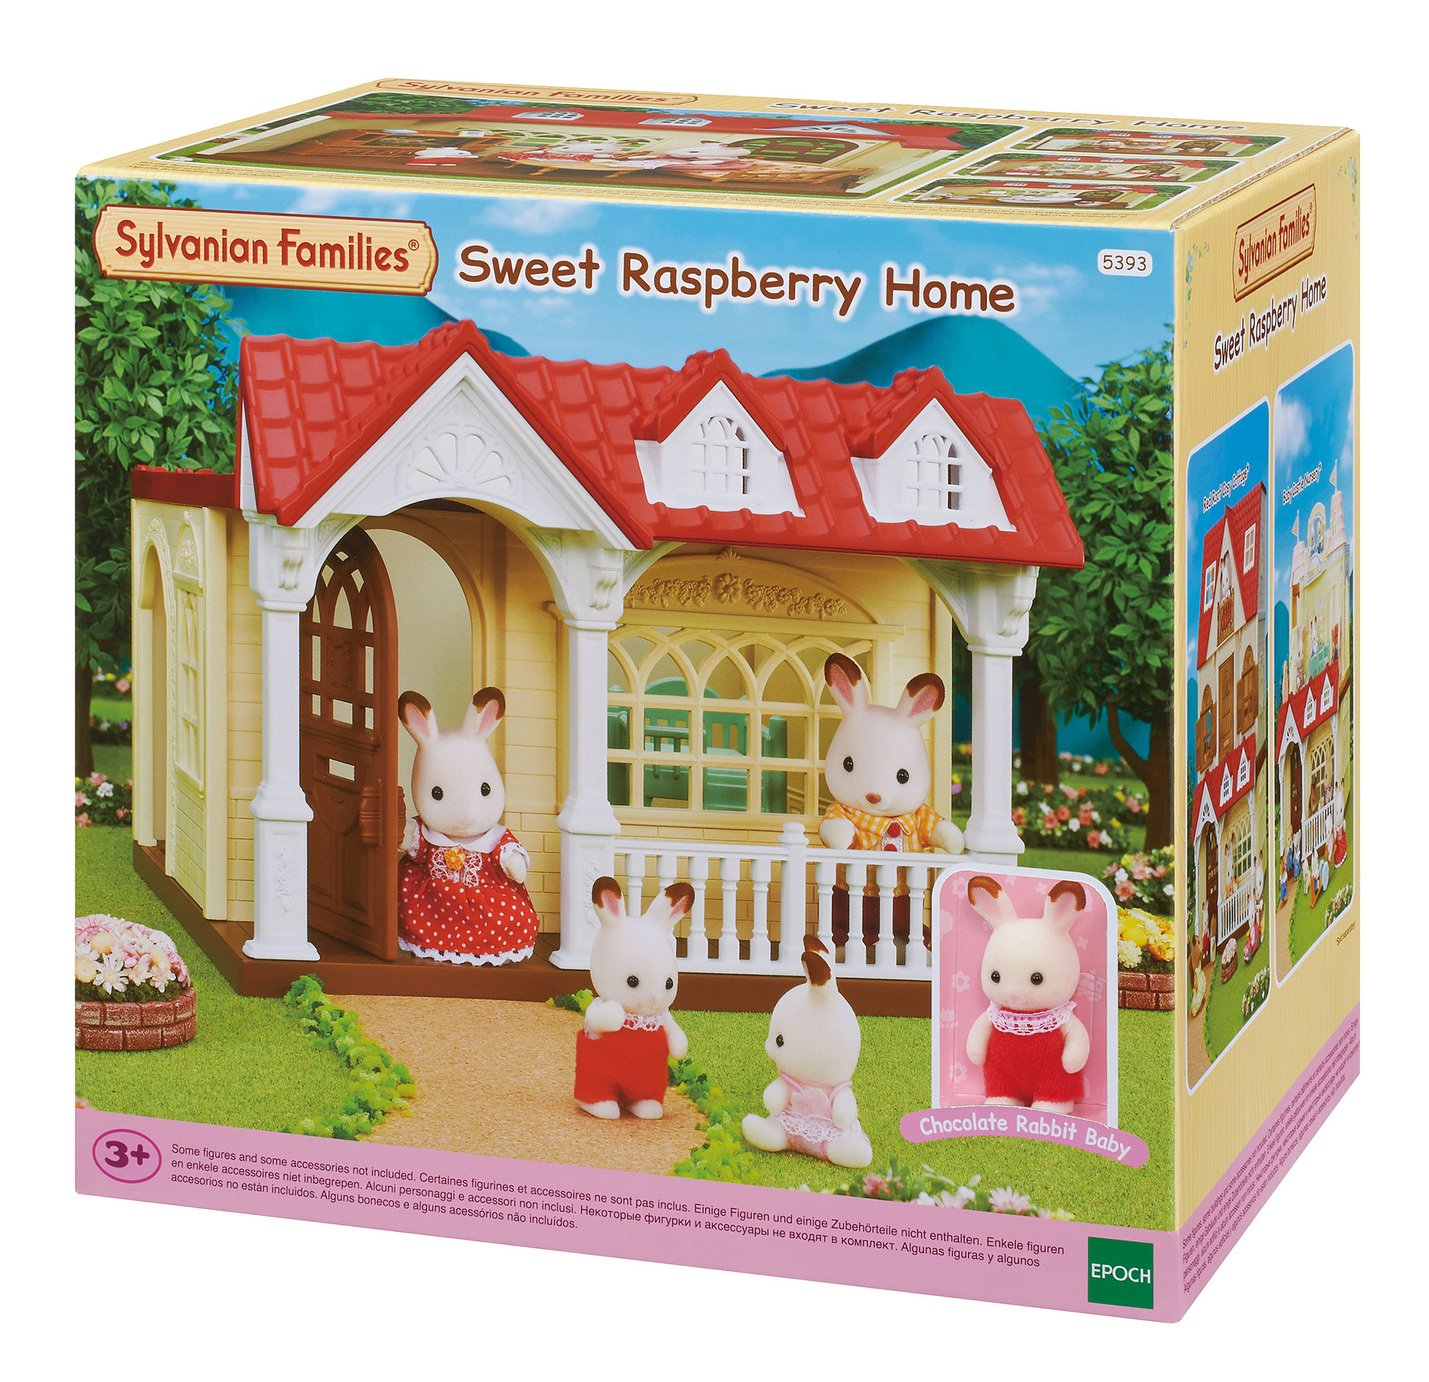 Sylvanian Families Sweet Raspberry Home Playset